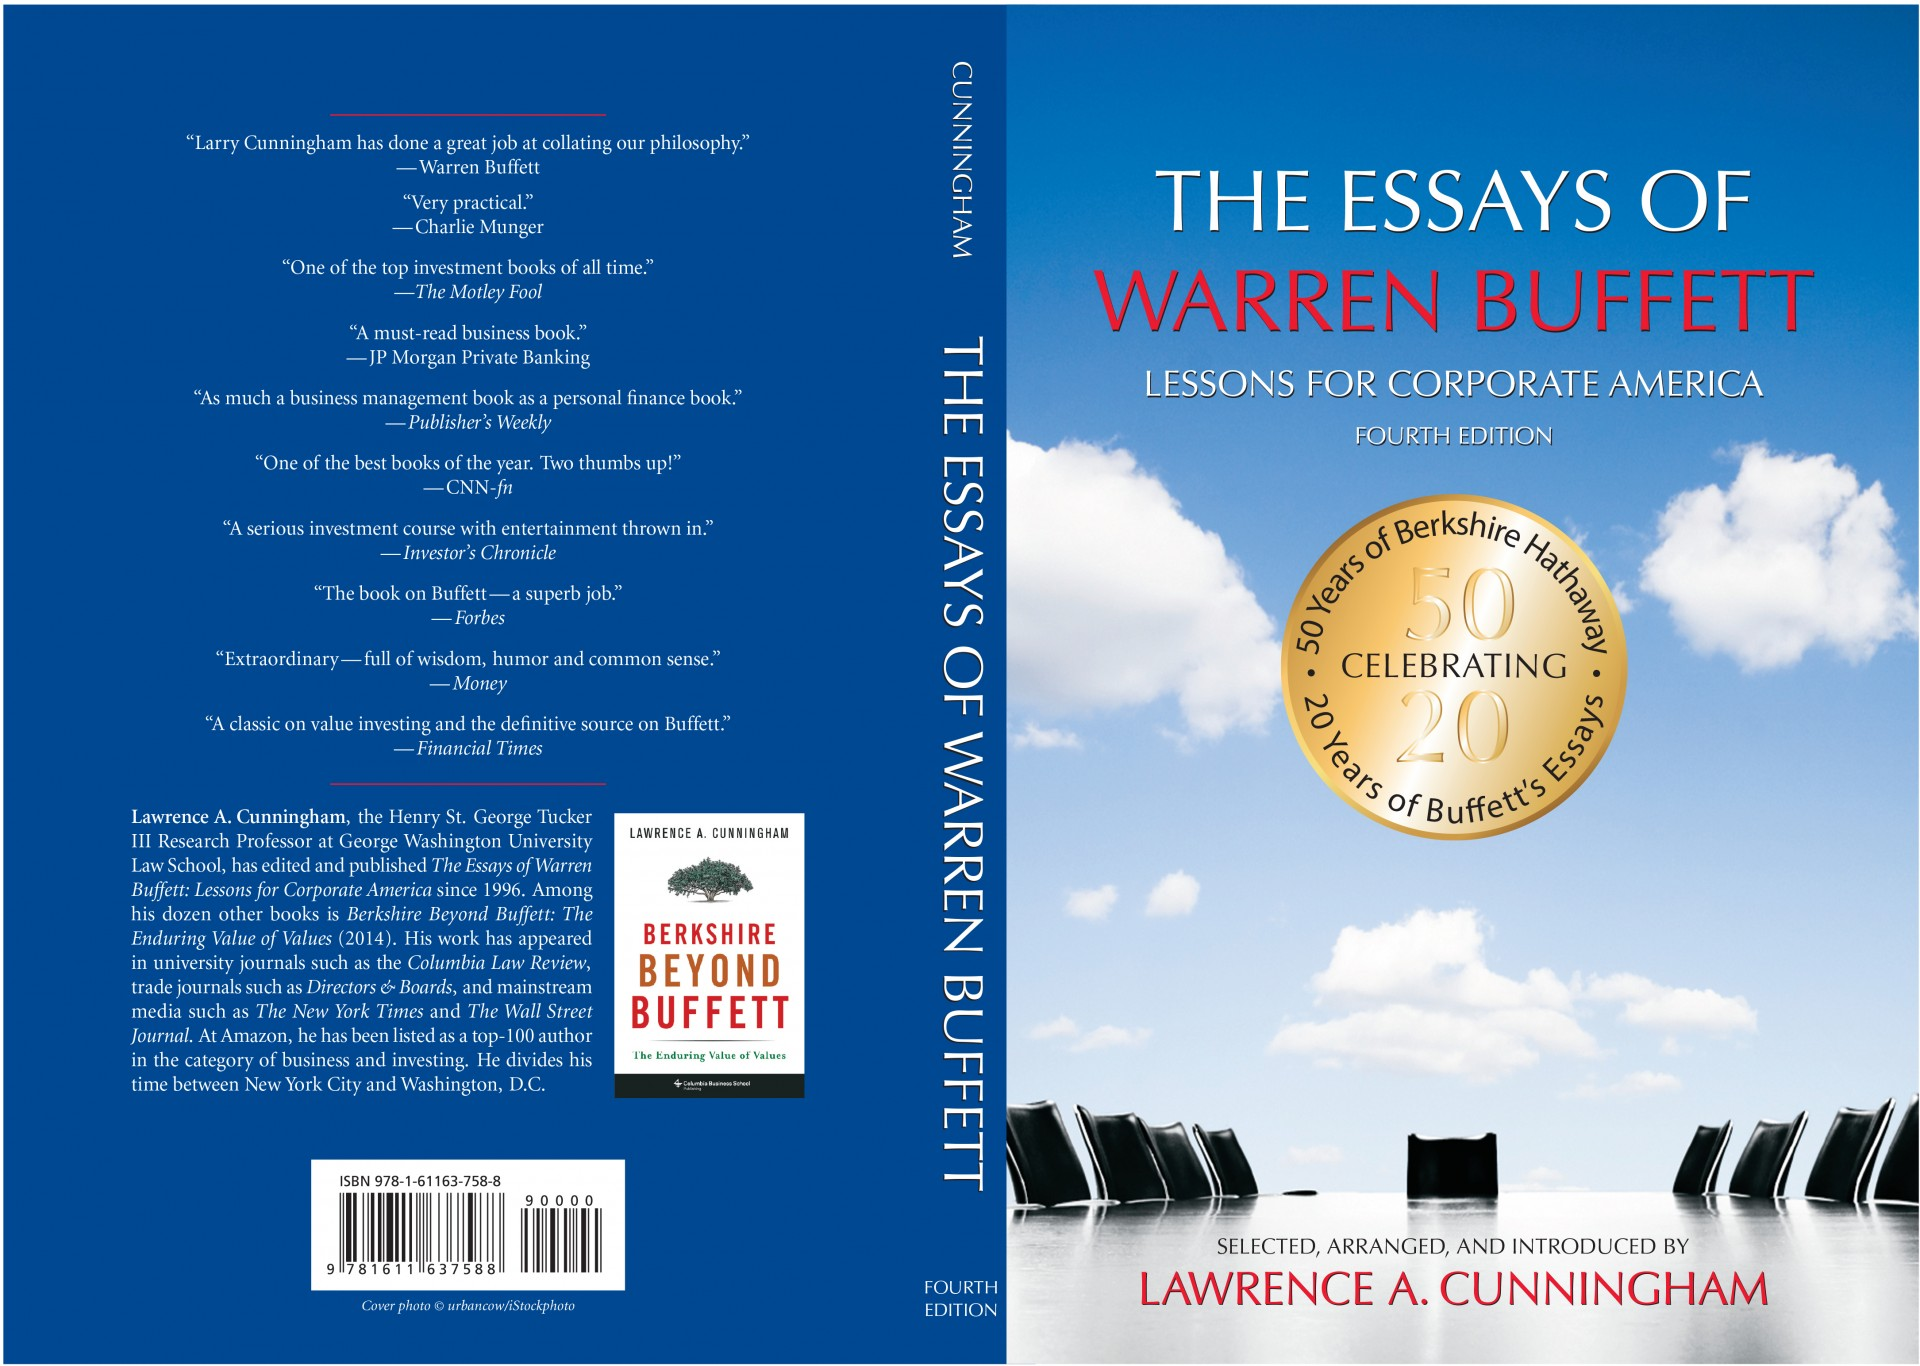 002 Essay Example The Essays Of Warren Buffett Lessons For Corporate Remarkable America Third Edition 3rd Second Pdf Audio Book 1920